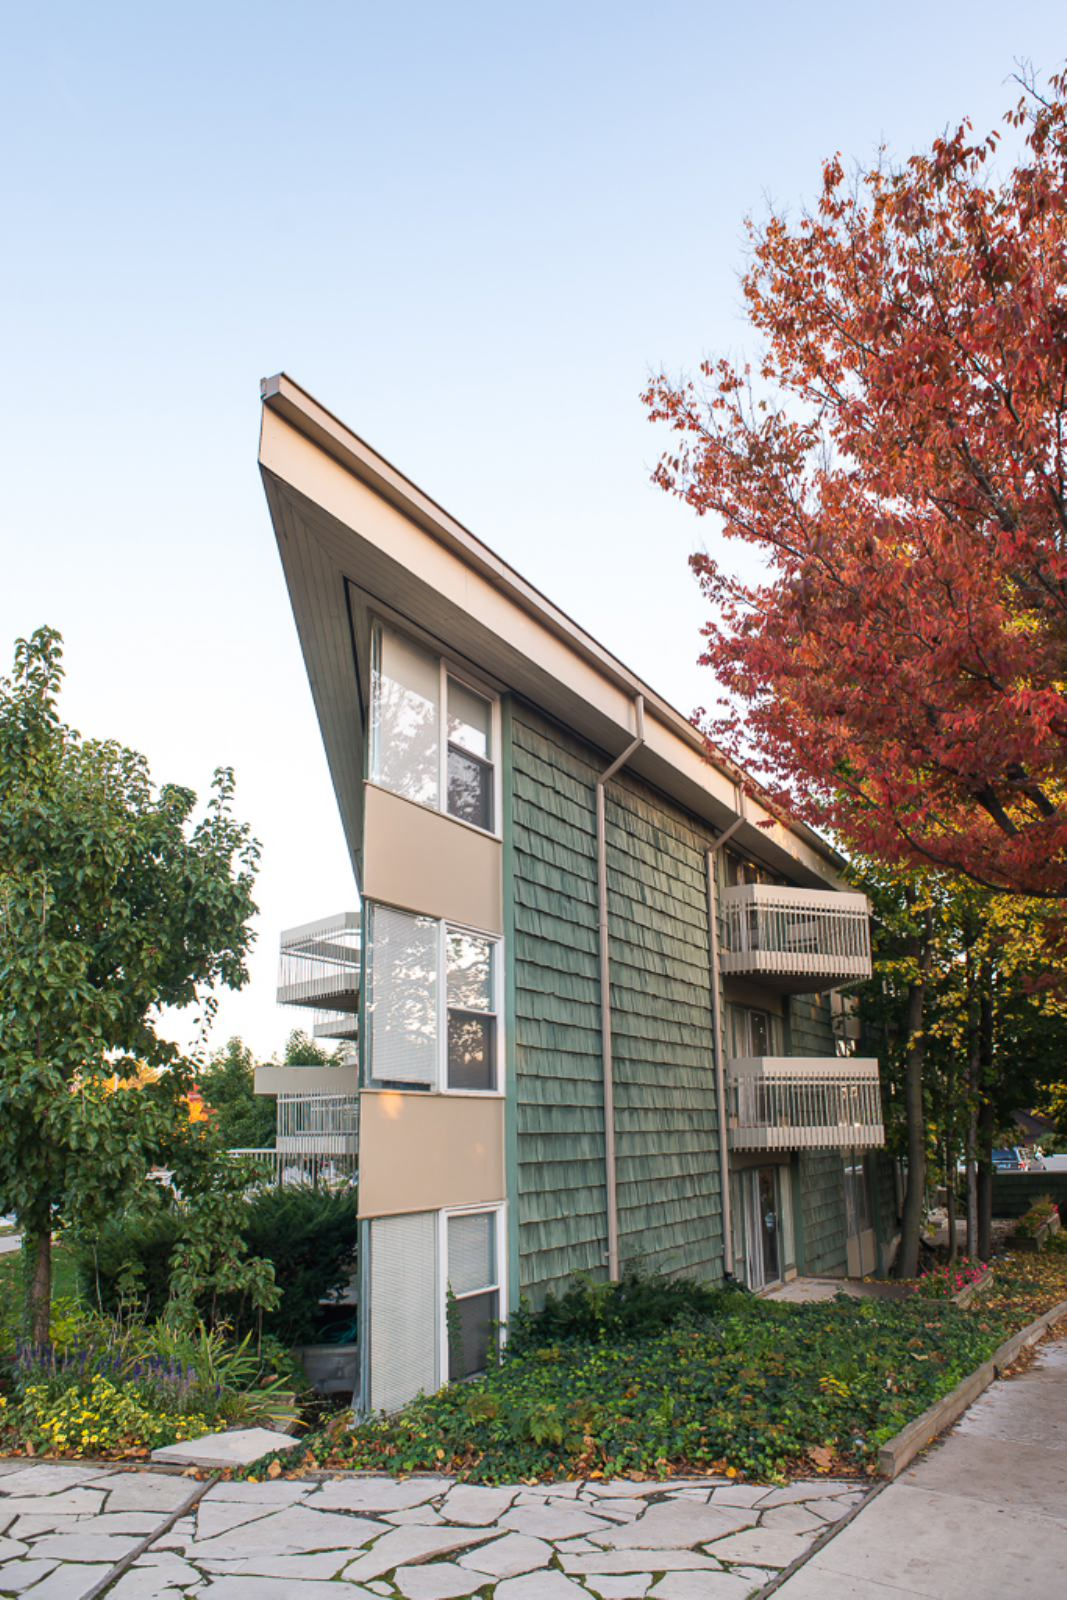 406 Packard 1 Bedroom 2 Bedrooms Apartment Are Available In Ann Arbor Apartments